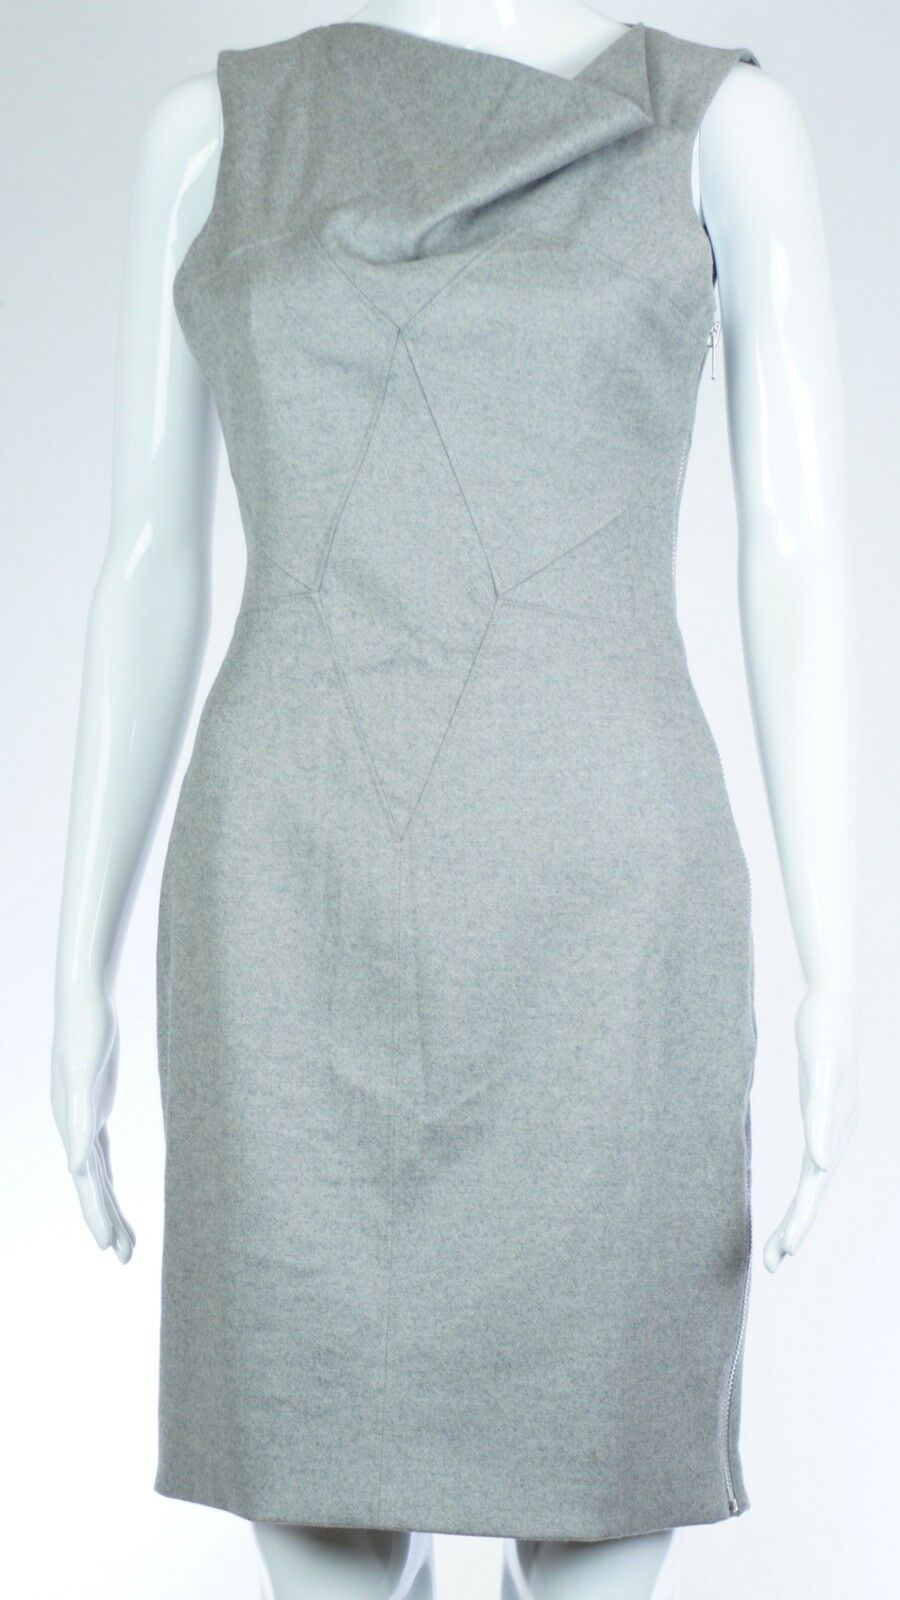 Helmut Lang Ruffled Sleeveless Zip Up Dress Size 2 Small color Grey